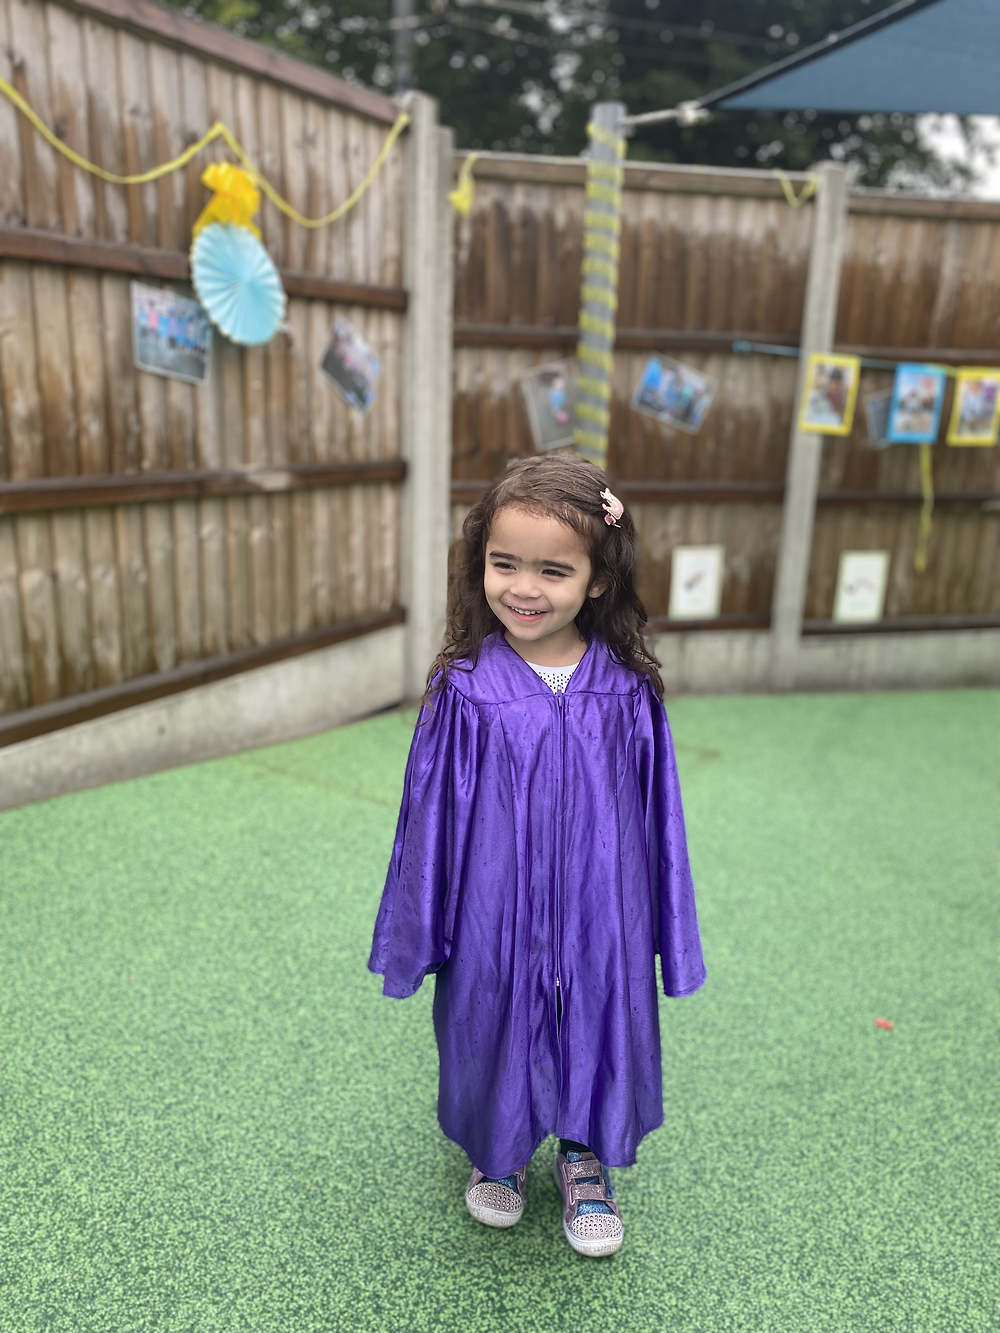 Gabby smiling and wearing a purple robe for her graduation day.